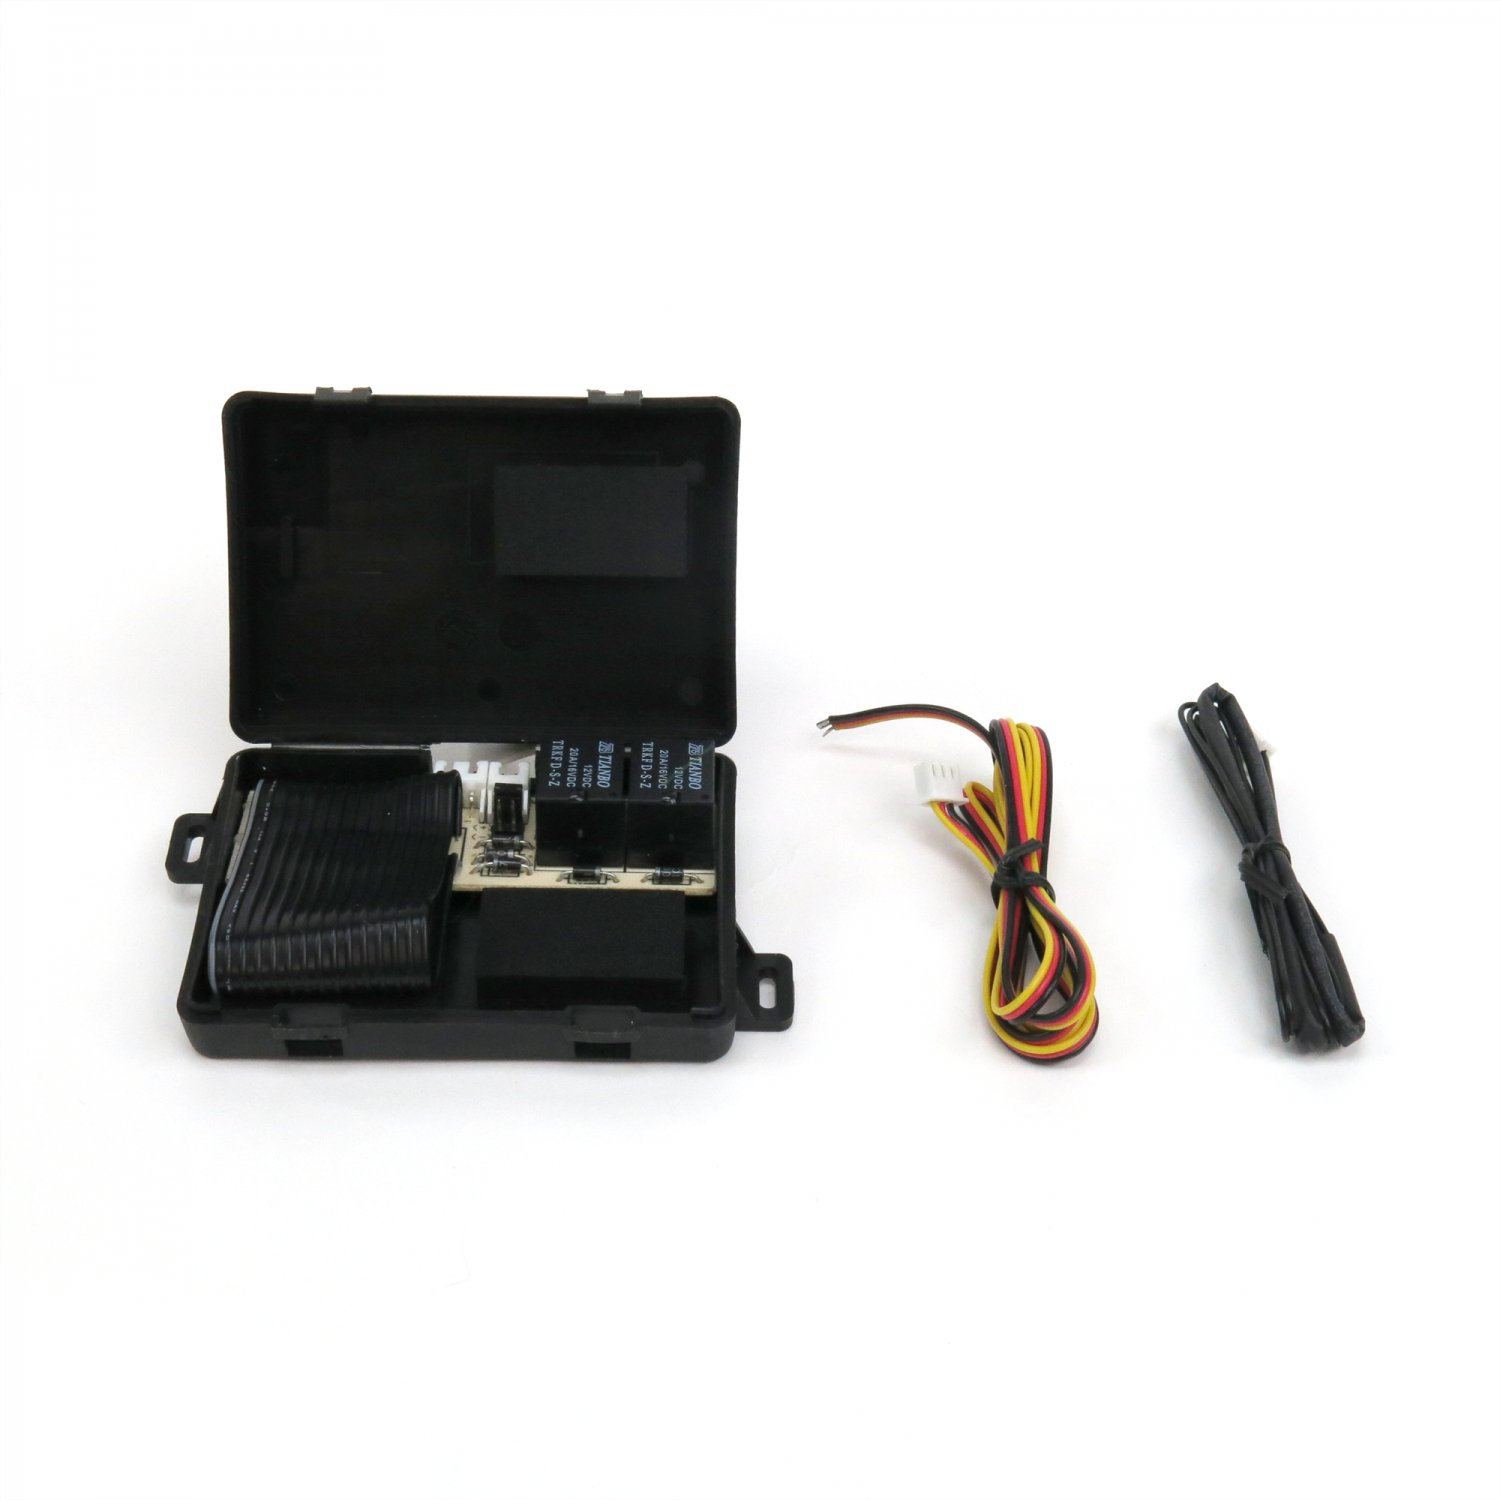 Transponder bypass jeep